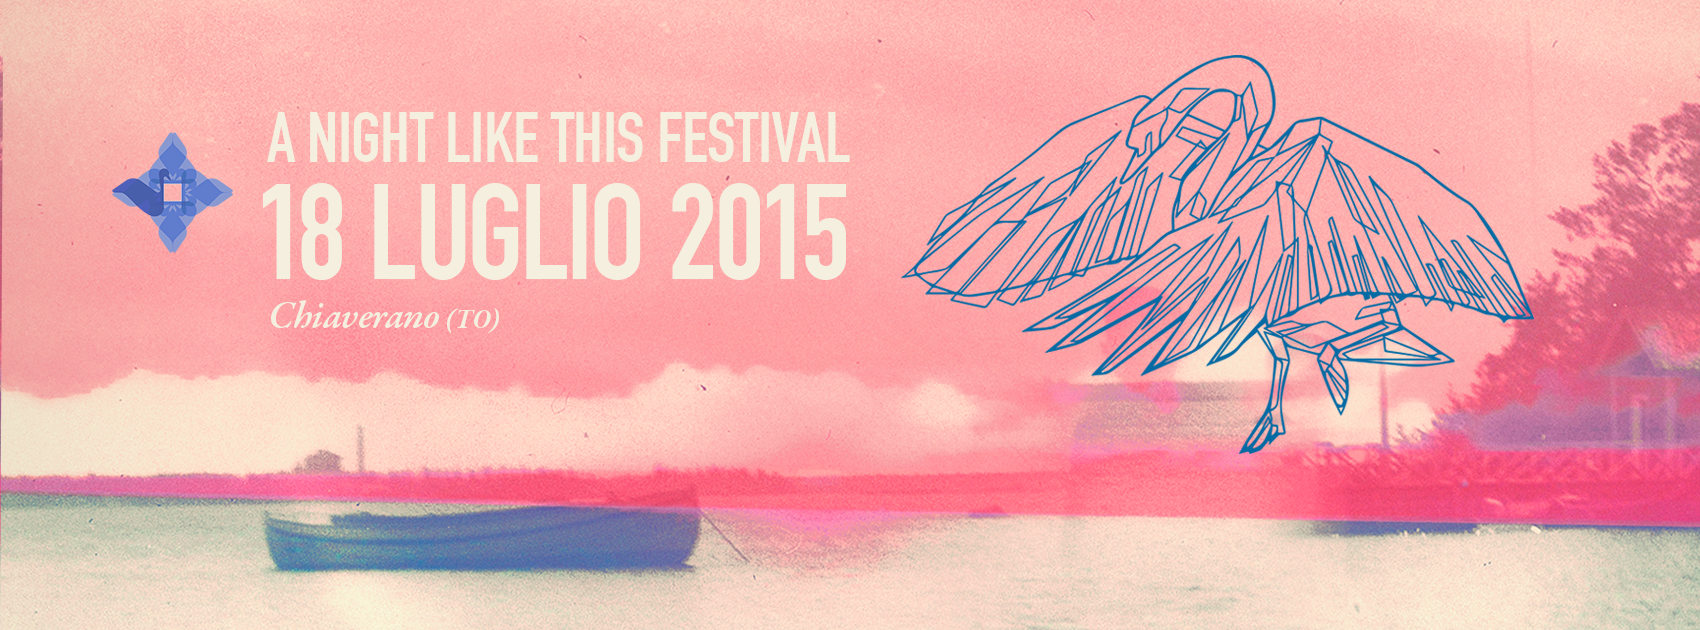 A Night Like This Festival  18 Luglio 2015 - Chiaverano (TO)